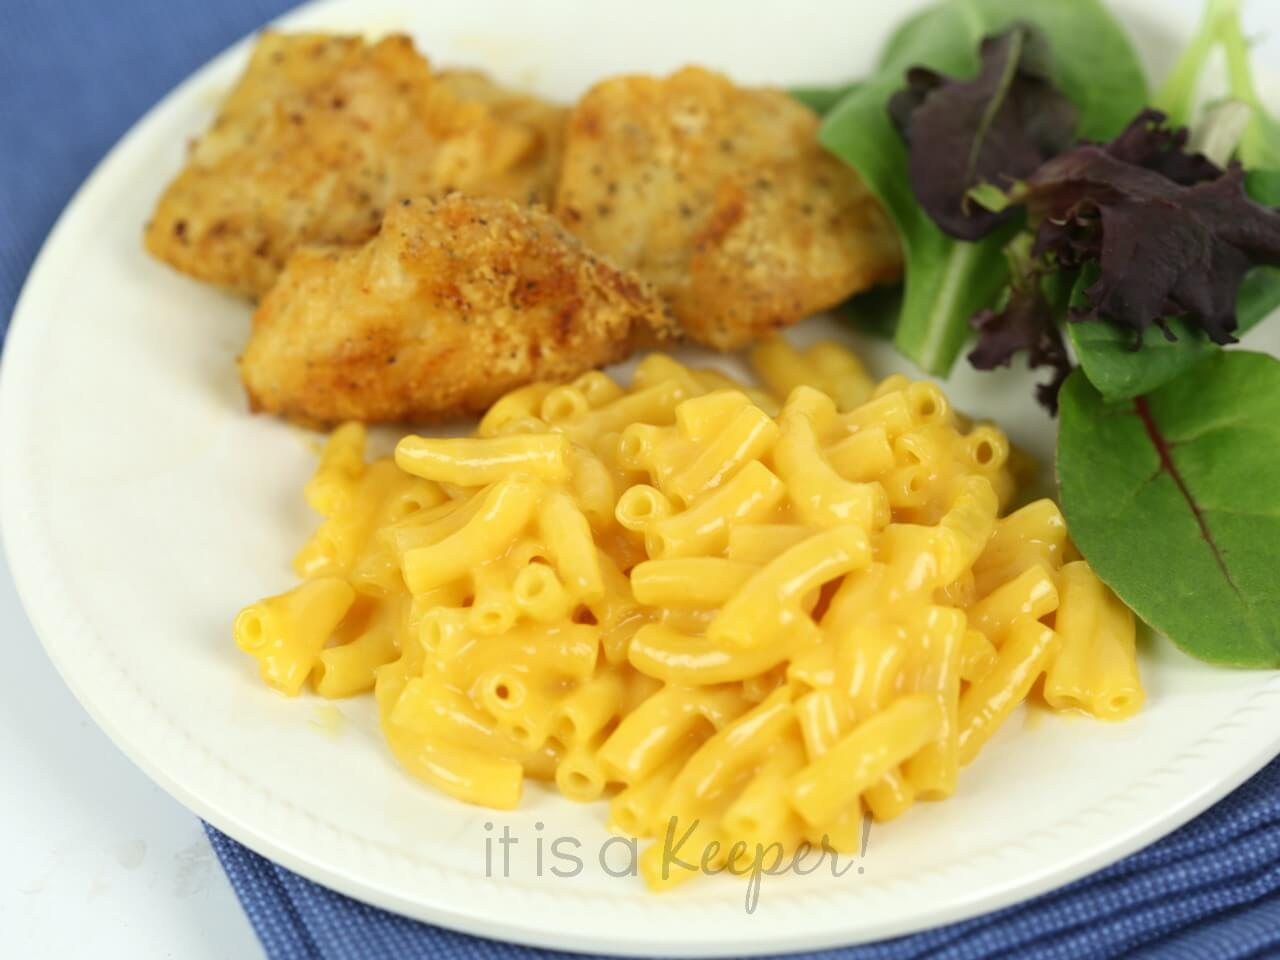 Baked Chicken Nuggets Recipe This Kid Friendly Recipe Is A Healthier And Easy Meal Idea